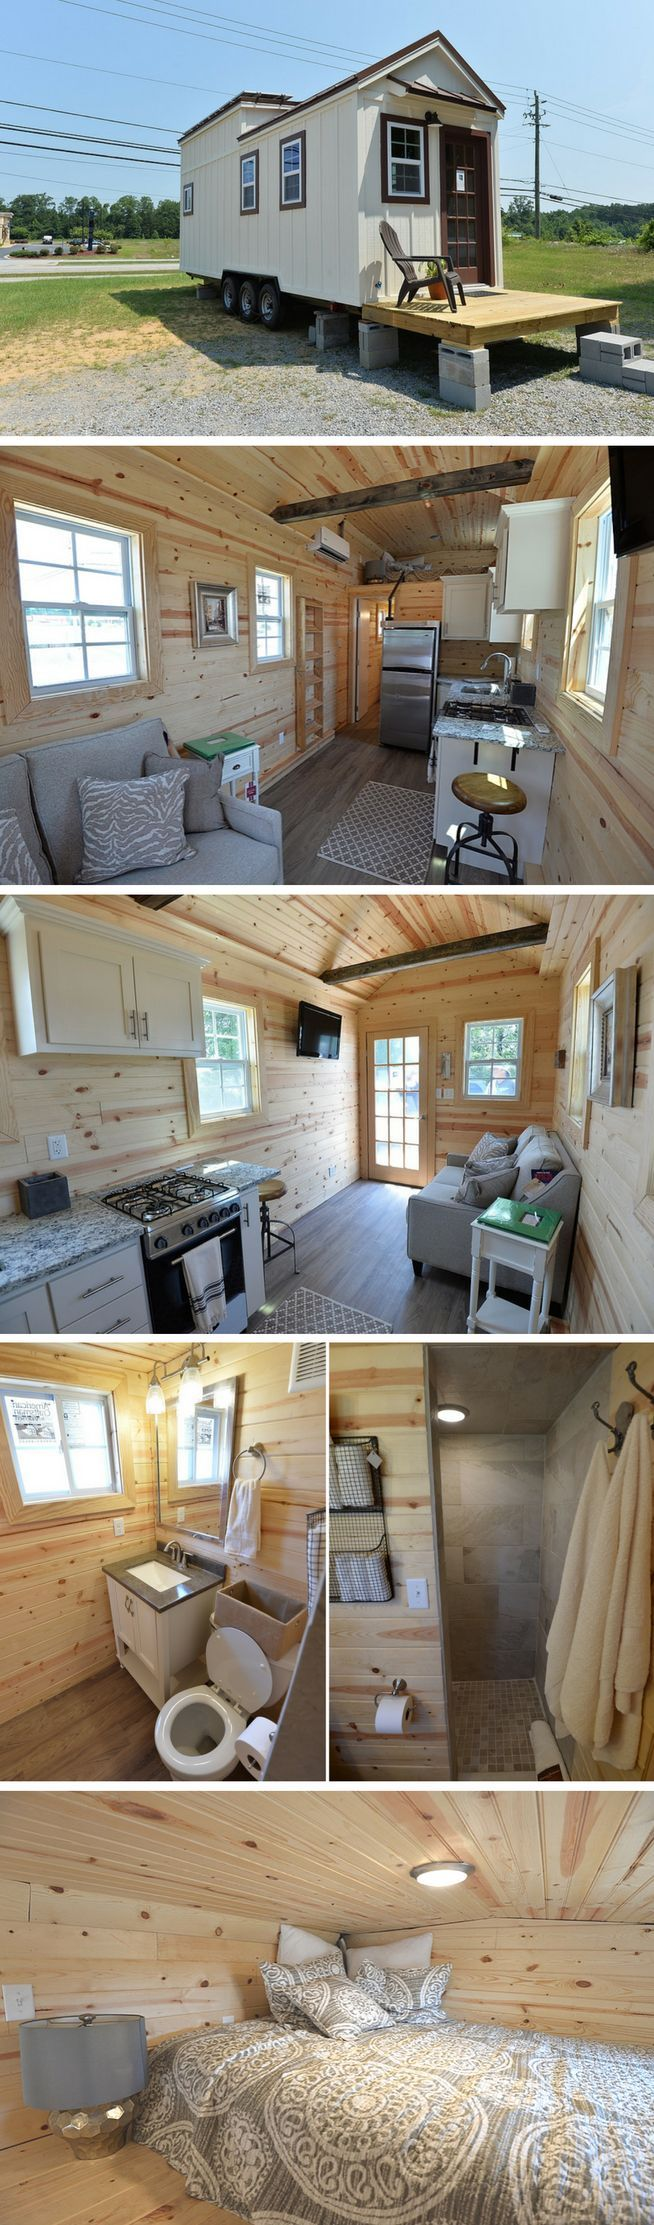 awesome A 265 sq ft tiny house with solar panels!... by //www ... on tiny house computer, tiny house bicycle, tiny house roofing, tiny house awning, tiny house on grid, tiny house air conditioning, tiny house windows, tiny house rainwater collection, tiny house swimming pool, tiny house led light, tiny house generator, tiny house wind power, tiny house fan, tiny house home, tiny house dc, tiny house windmill, tiny house ladder, tiny house refrigerator, tiny house electrical, tiny house water,